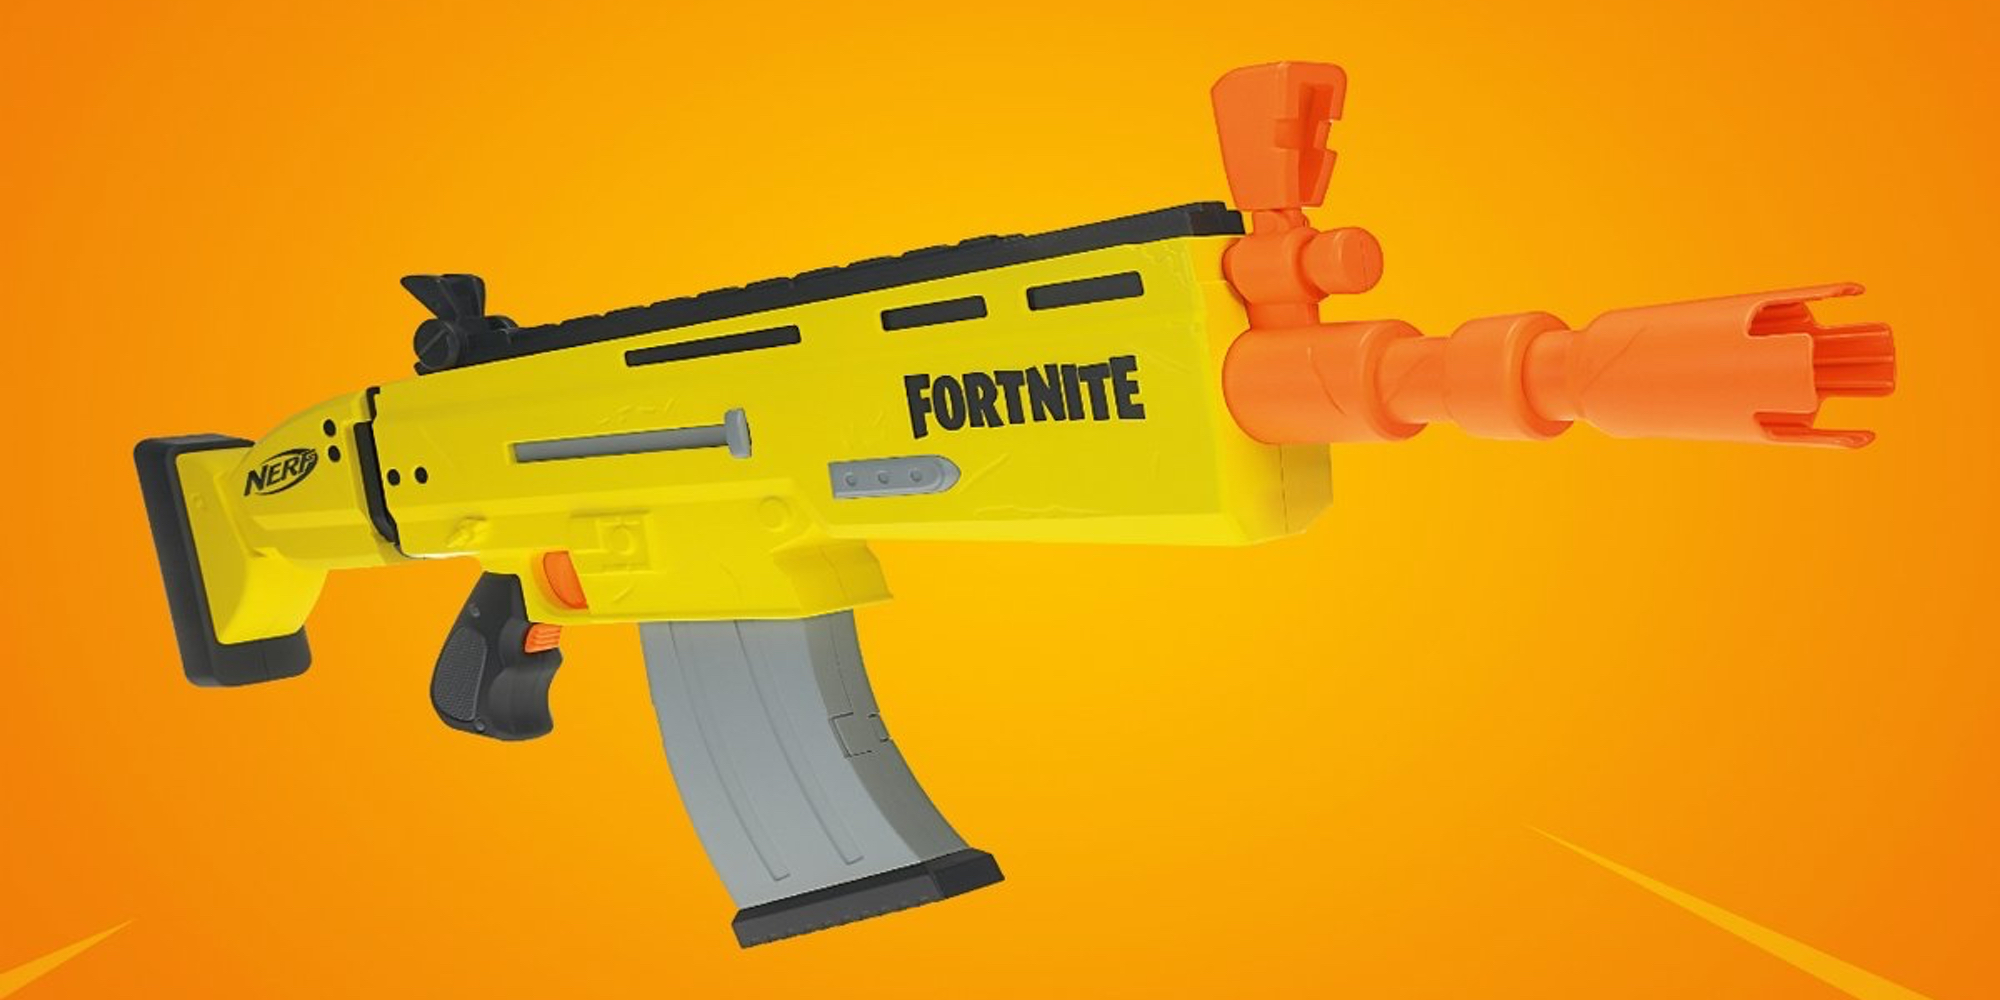 Nerf Fortnite Scar Blaster Unveiled Before Official Launch Next Year